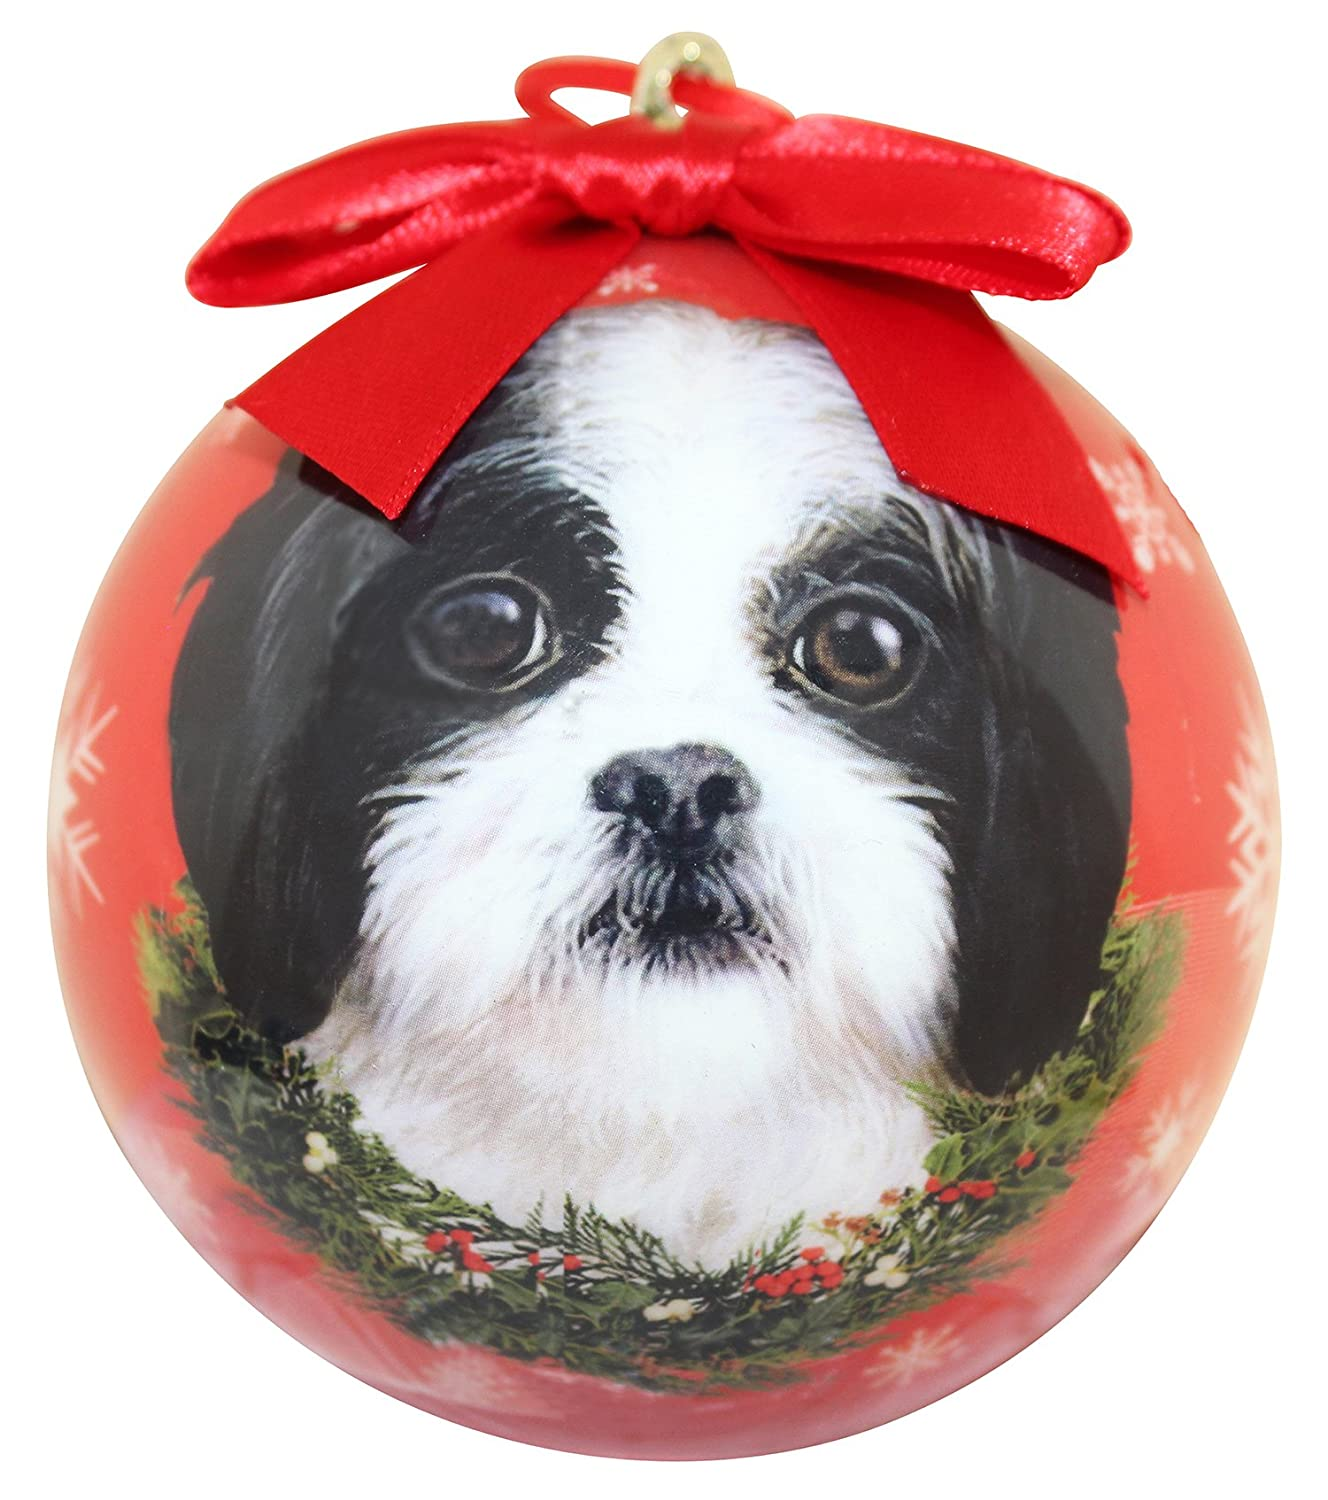 Shih Tzu Christmas Ornament Shatter Proof Ball Easy To Personalize A Perfect Gift For Shih Tzu Lovers E&S Pets black Christmas Ornament